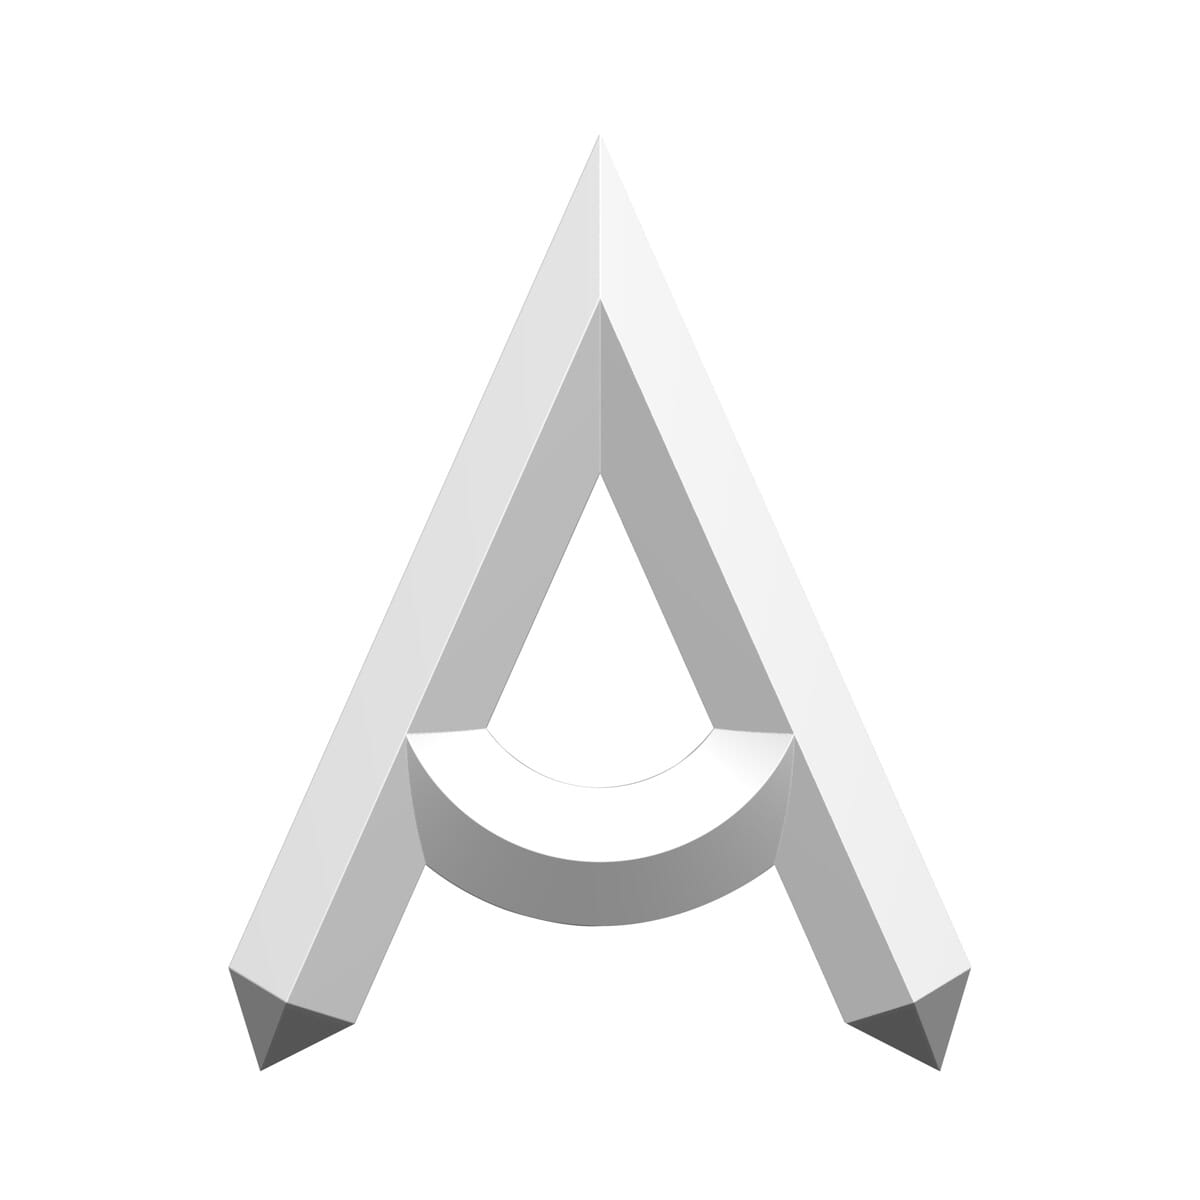 M5 x 12mm Full Thread Carriage Bolts (DIN 603) - Black A2 Stainless Steel Drawing